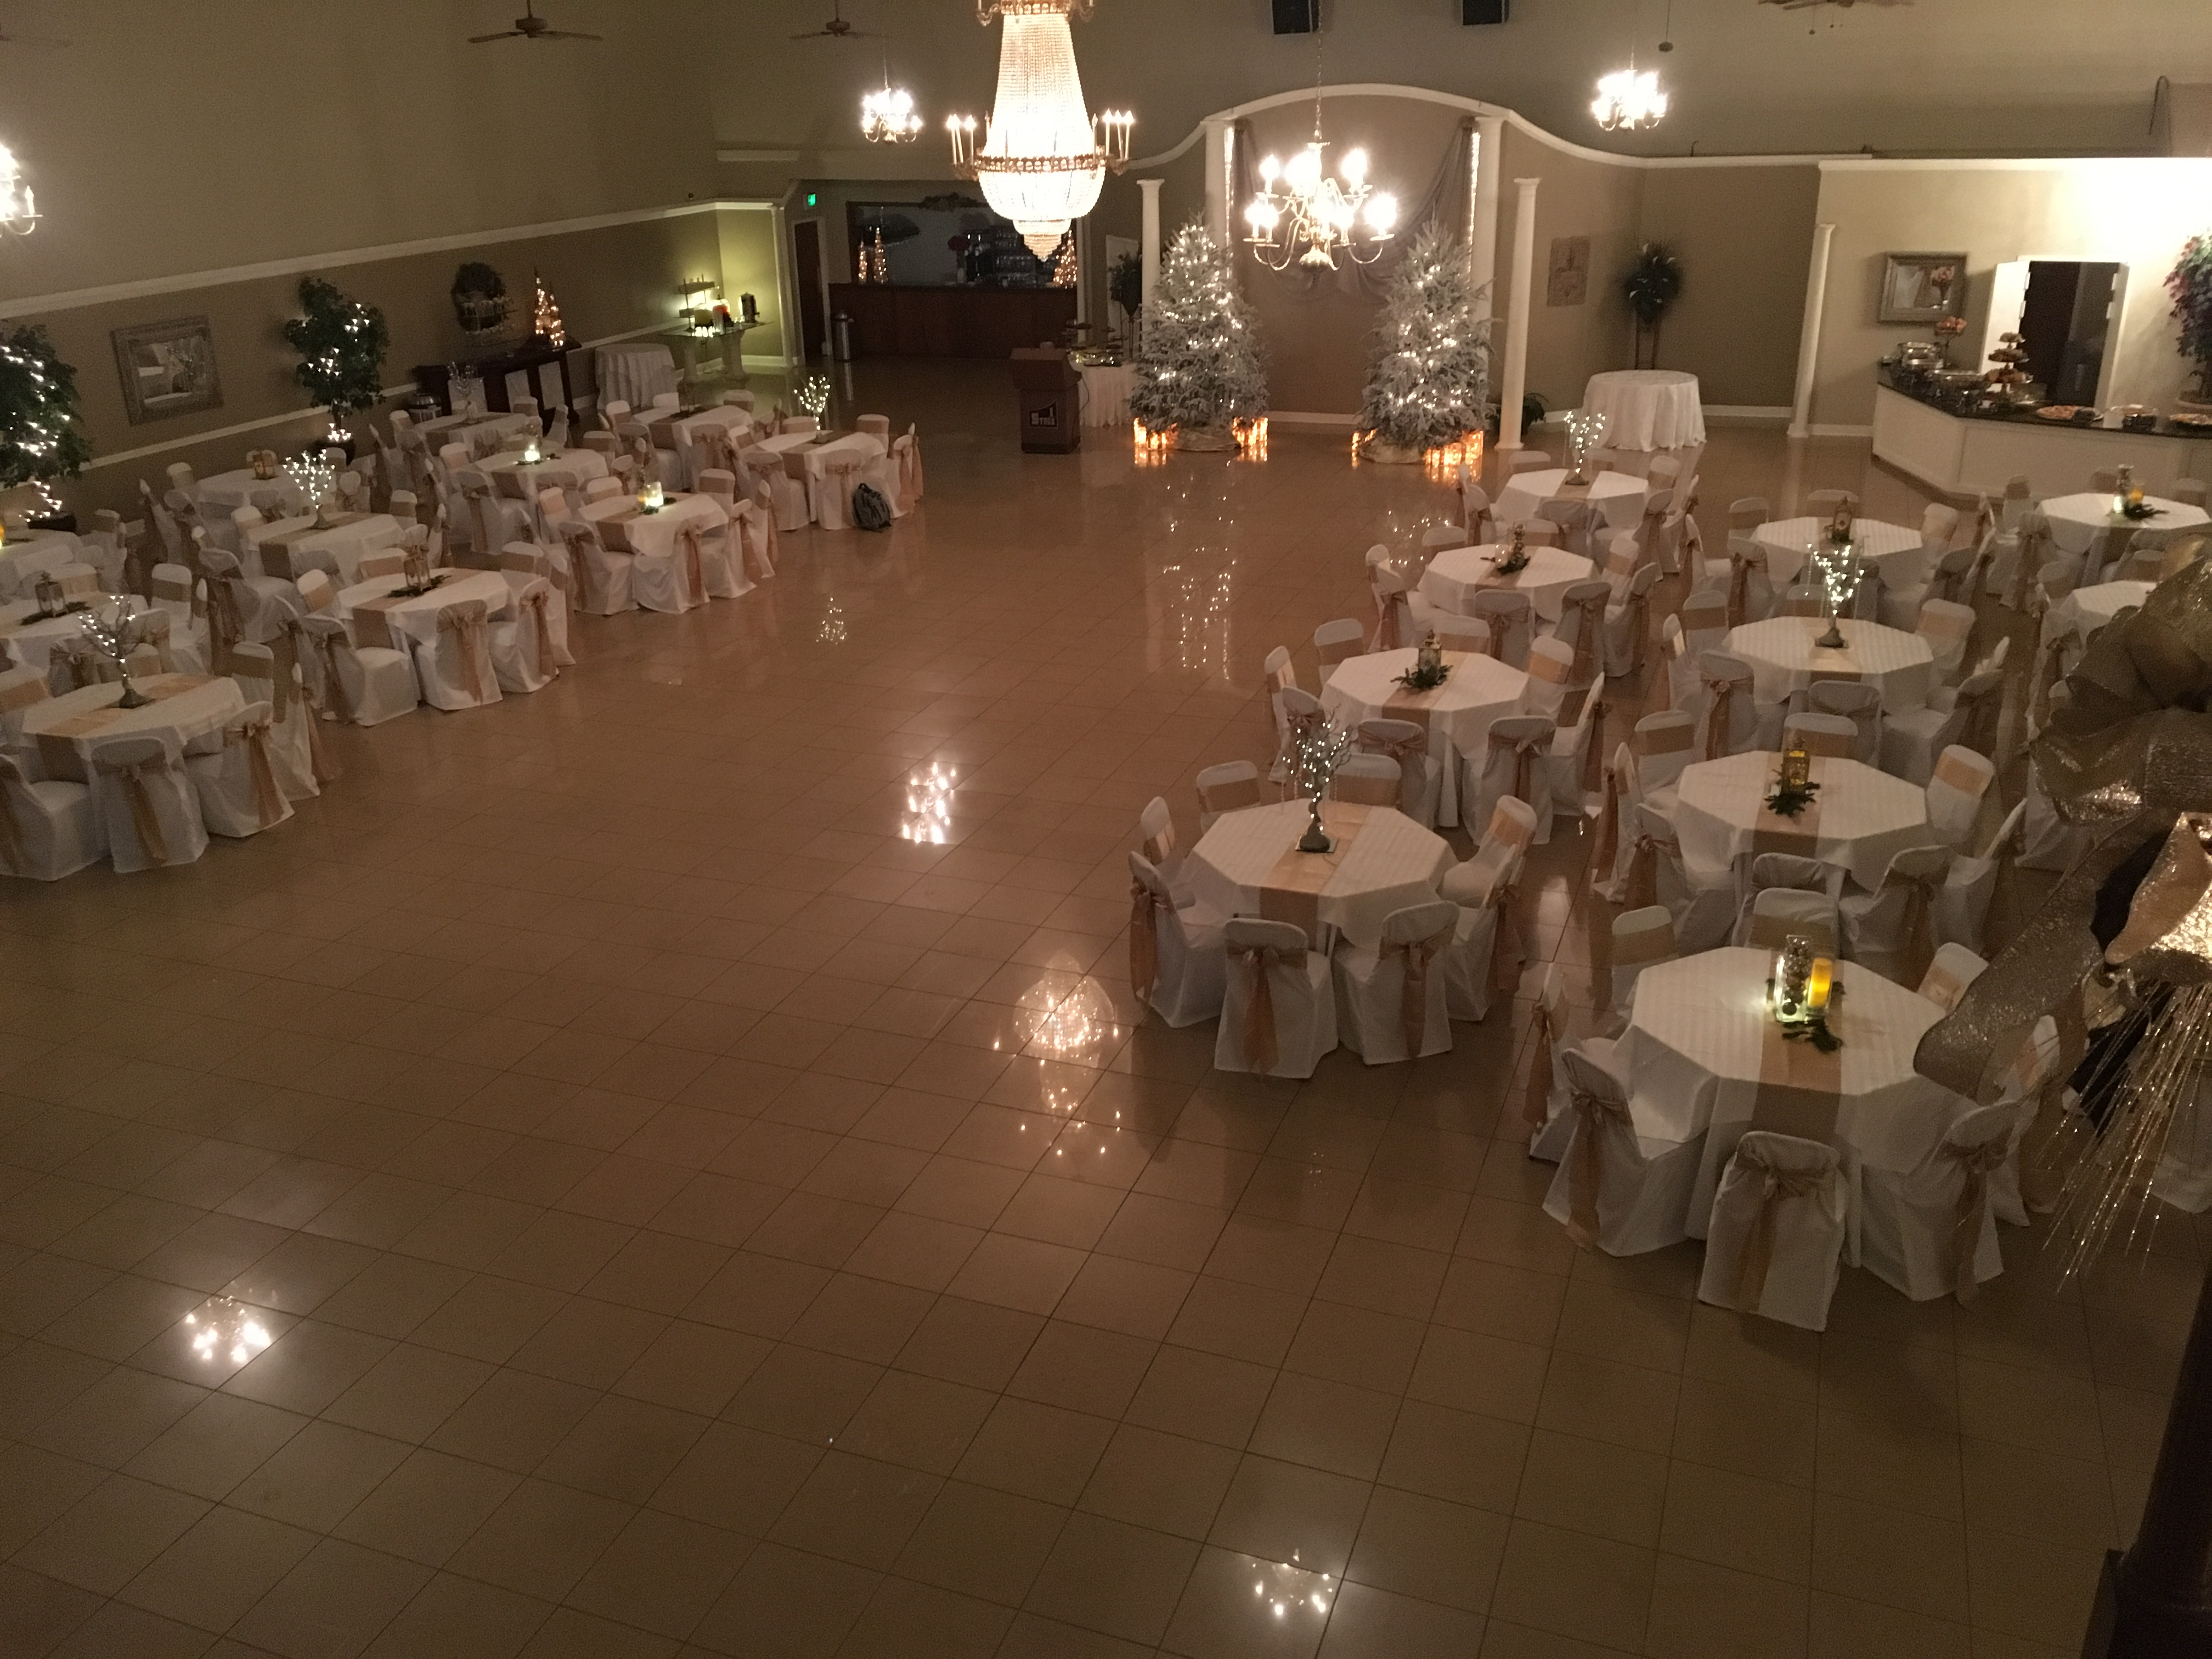 Event Venue And Catering Services Baton Rouge La Stage 1 Catering